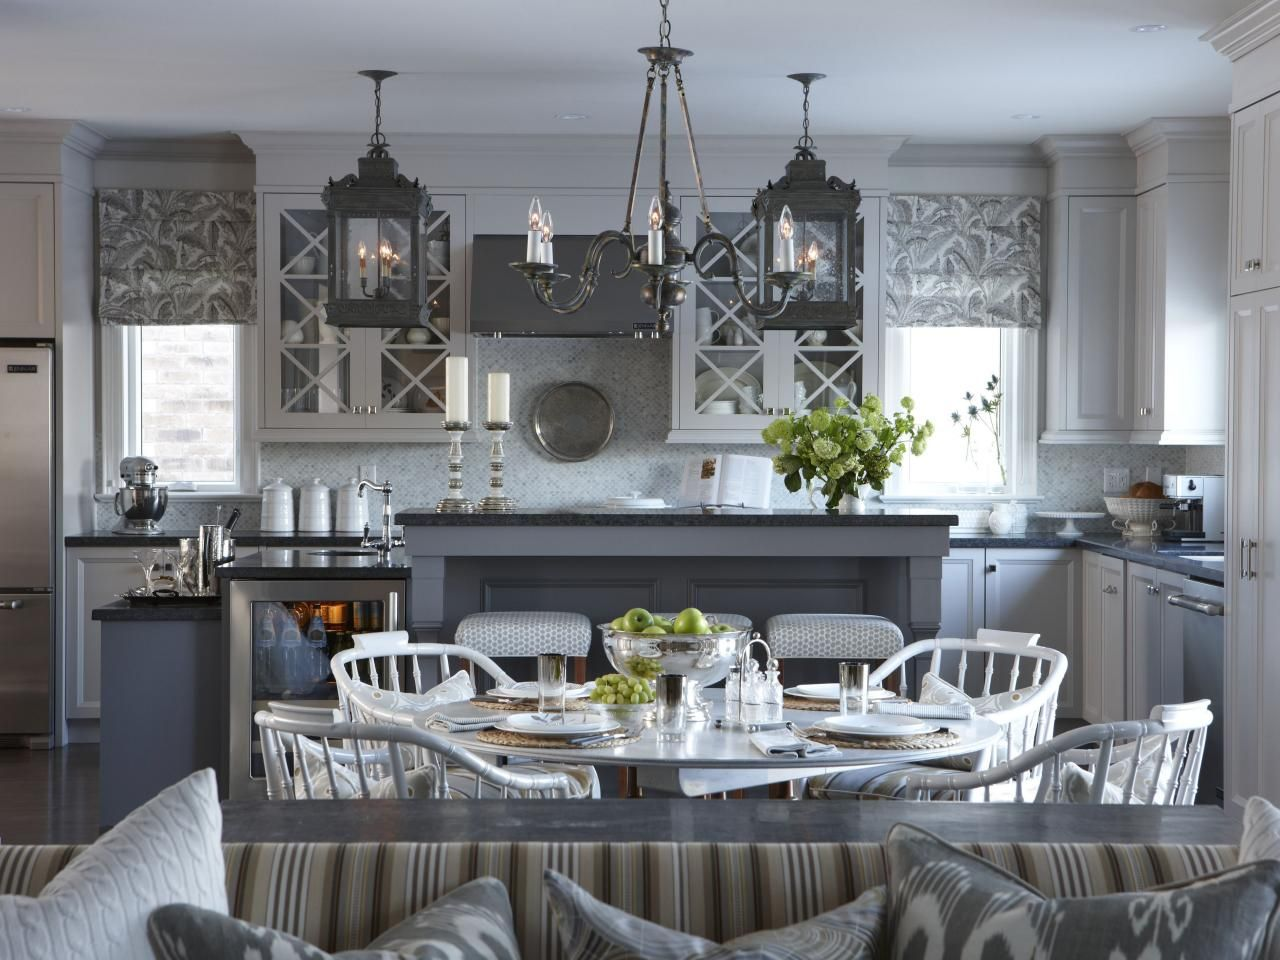 Sarah richardson farmhouse kitchen - Best Images About Family Room And Kitchen Design Ideas On Sarah Richardson Kitchen Designs